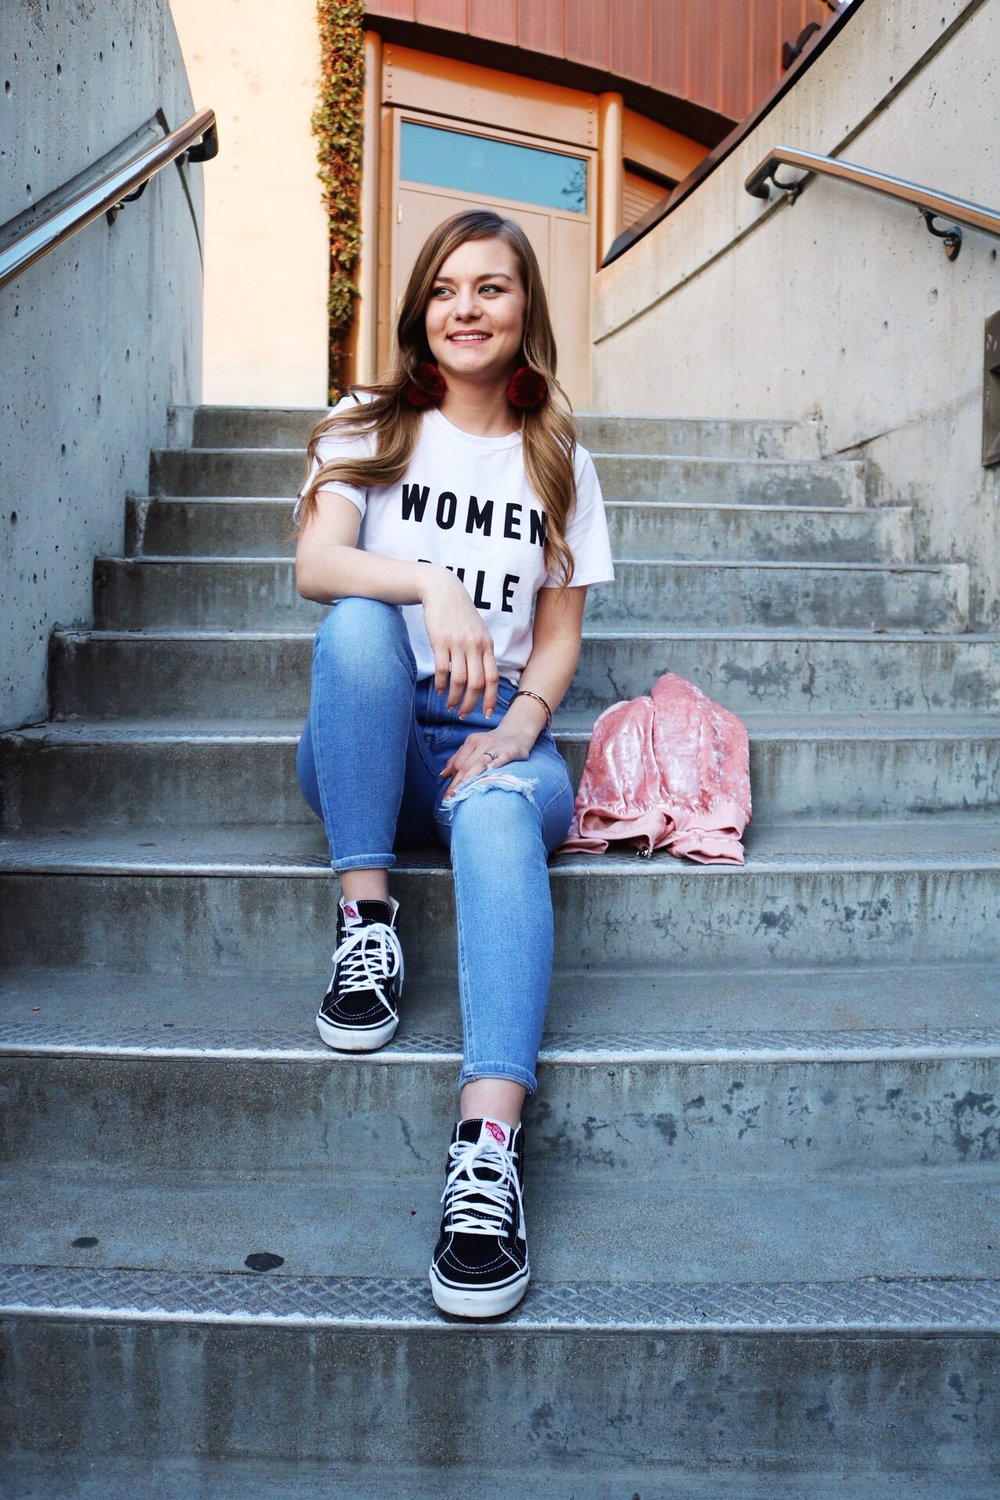 Forever 21 Women Rule Tee, red beret, black fish net denim, light distressed denim, Galentines Day, Modesto photo locations, Black Vans